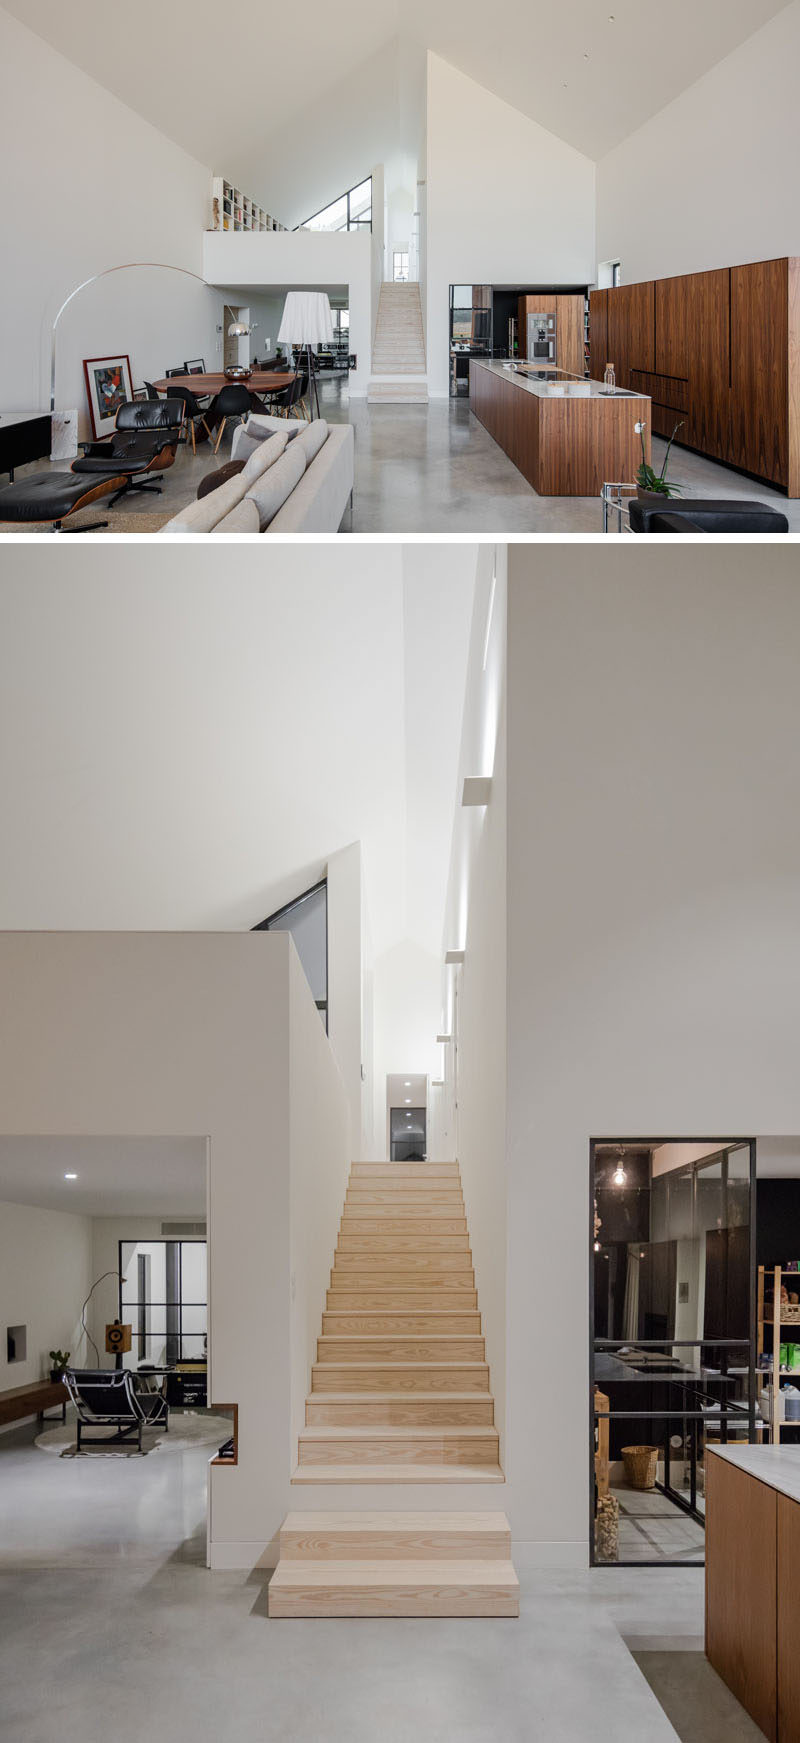 Connecting the social areas of this modern house with the bedrooms and other areas of the home is a simple wood staircase between white walls. #WoodStairs #ModernInteriorDesign